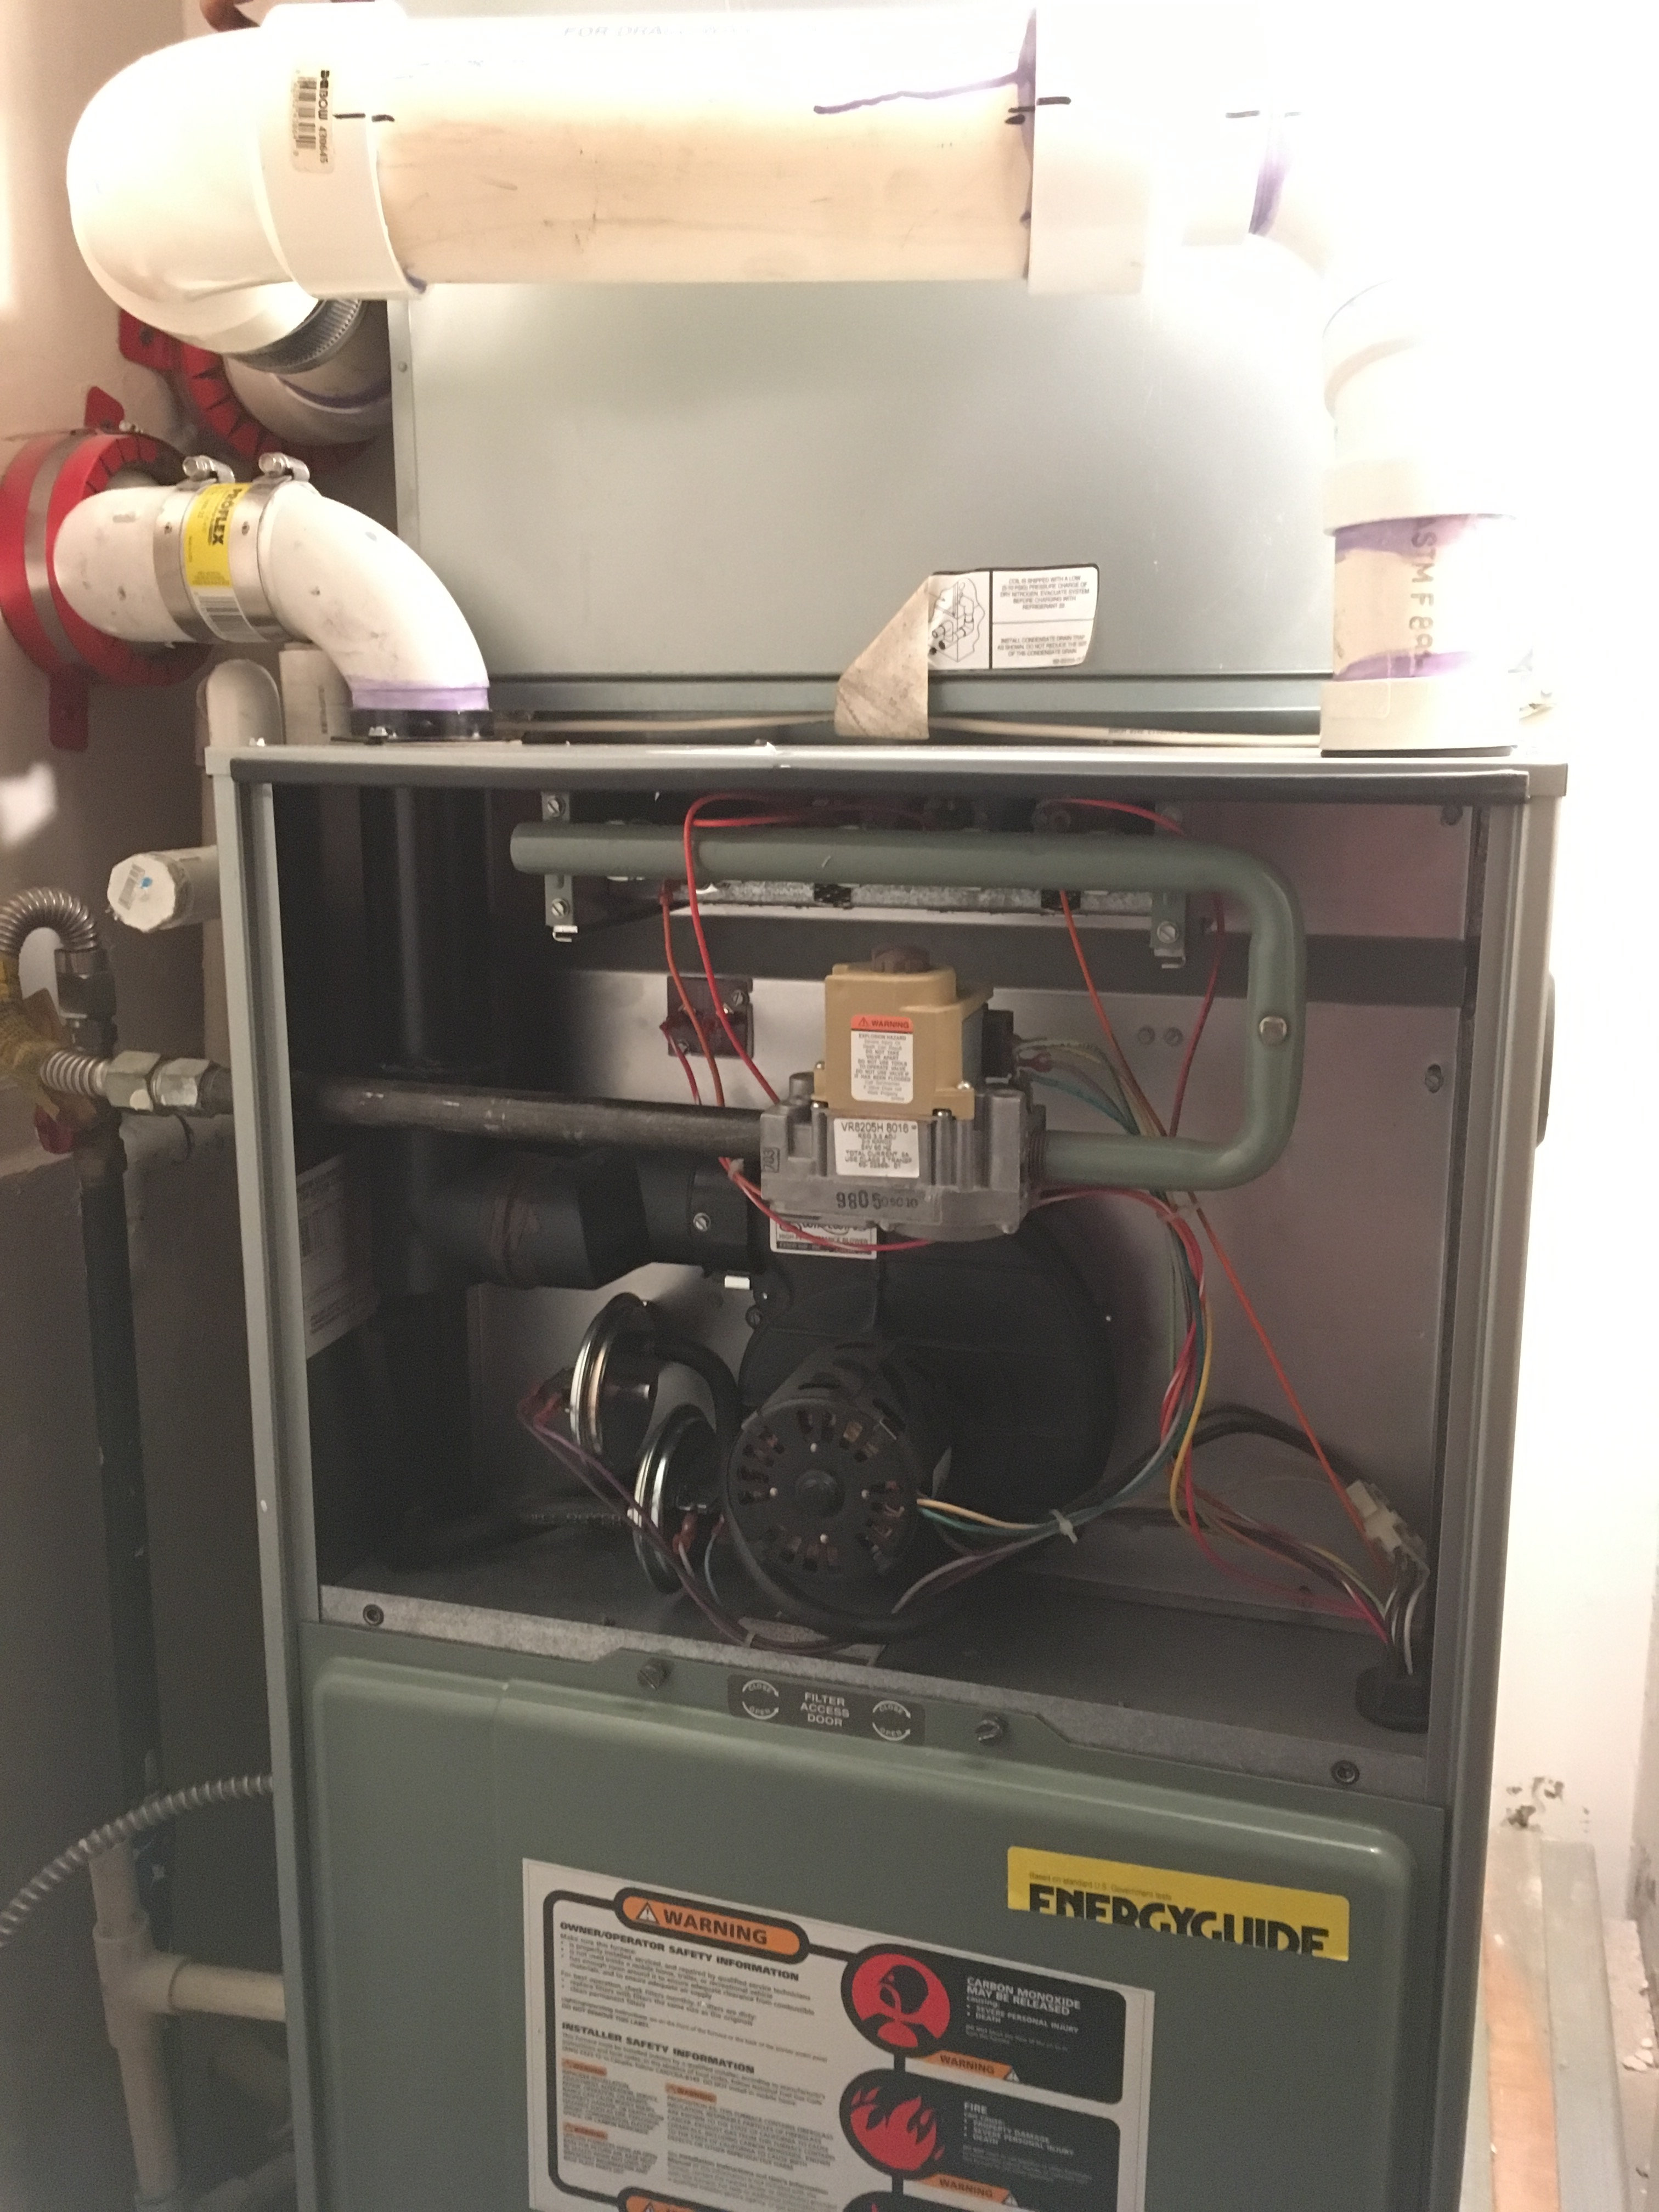 Rheem Classic 90 Plus Furnace Pilot Light Acting Up